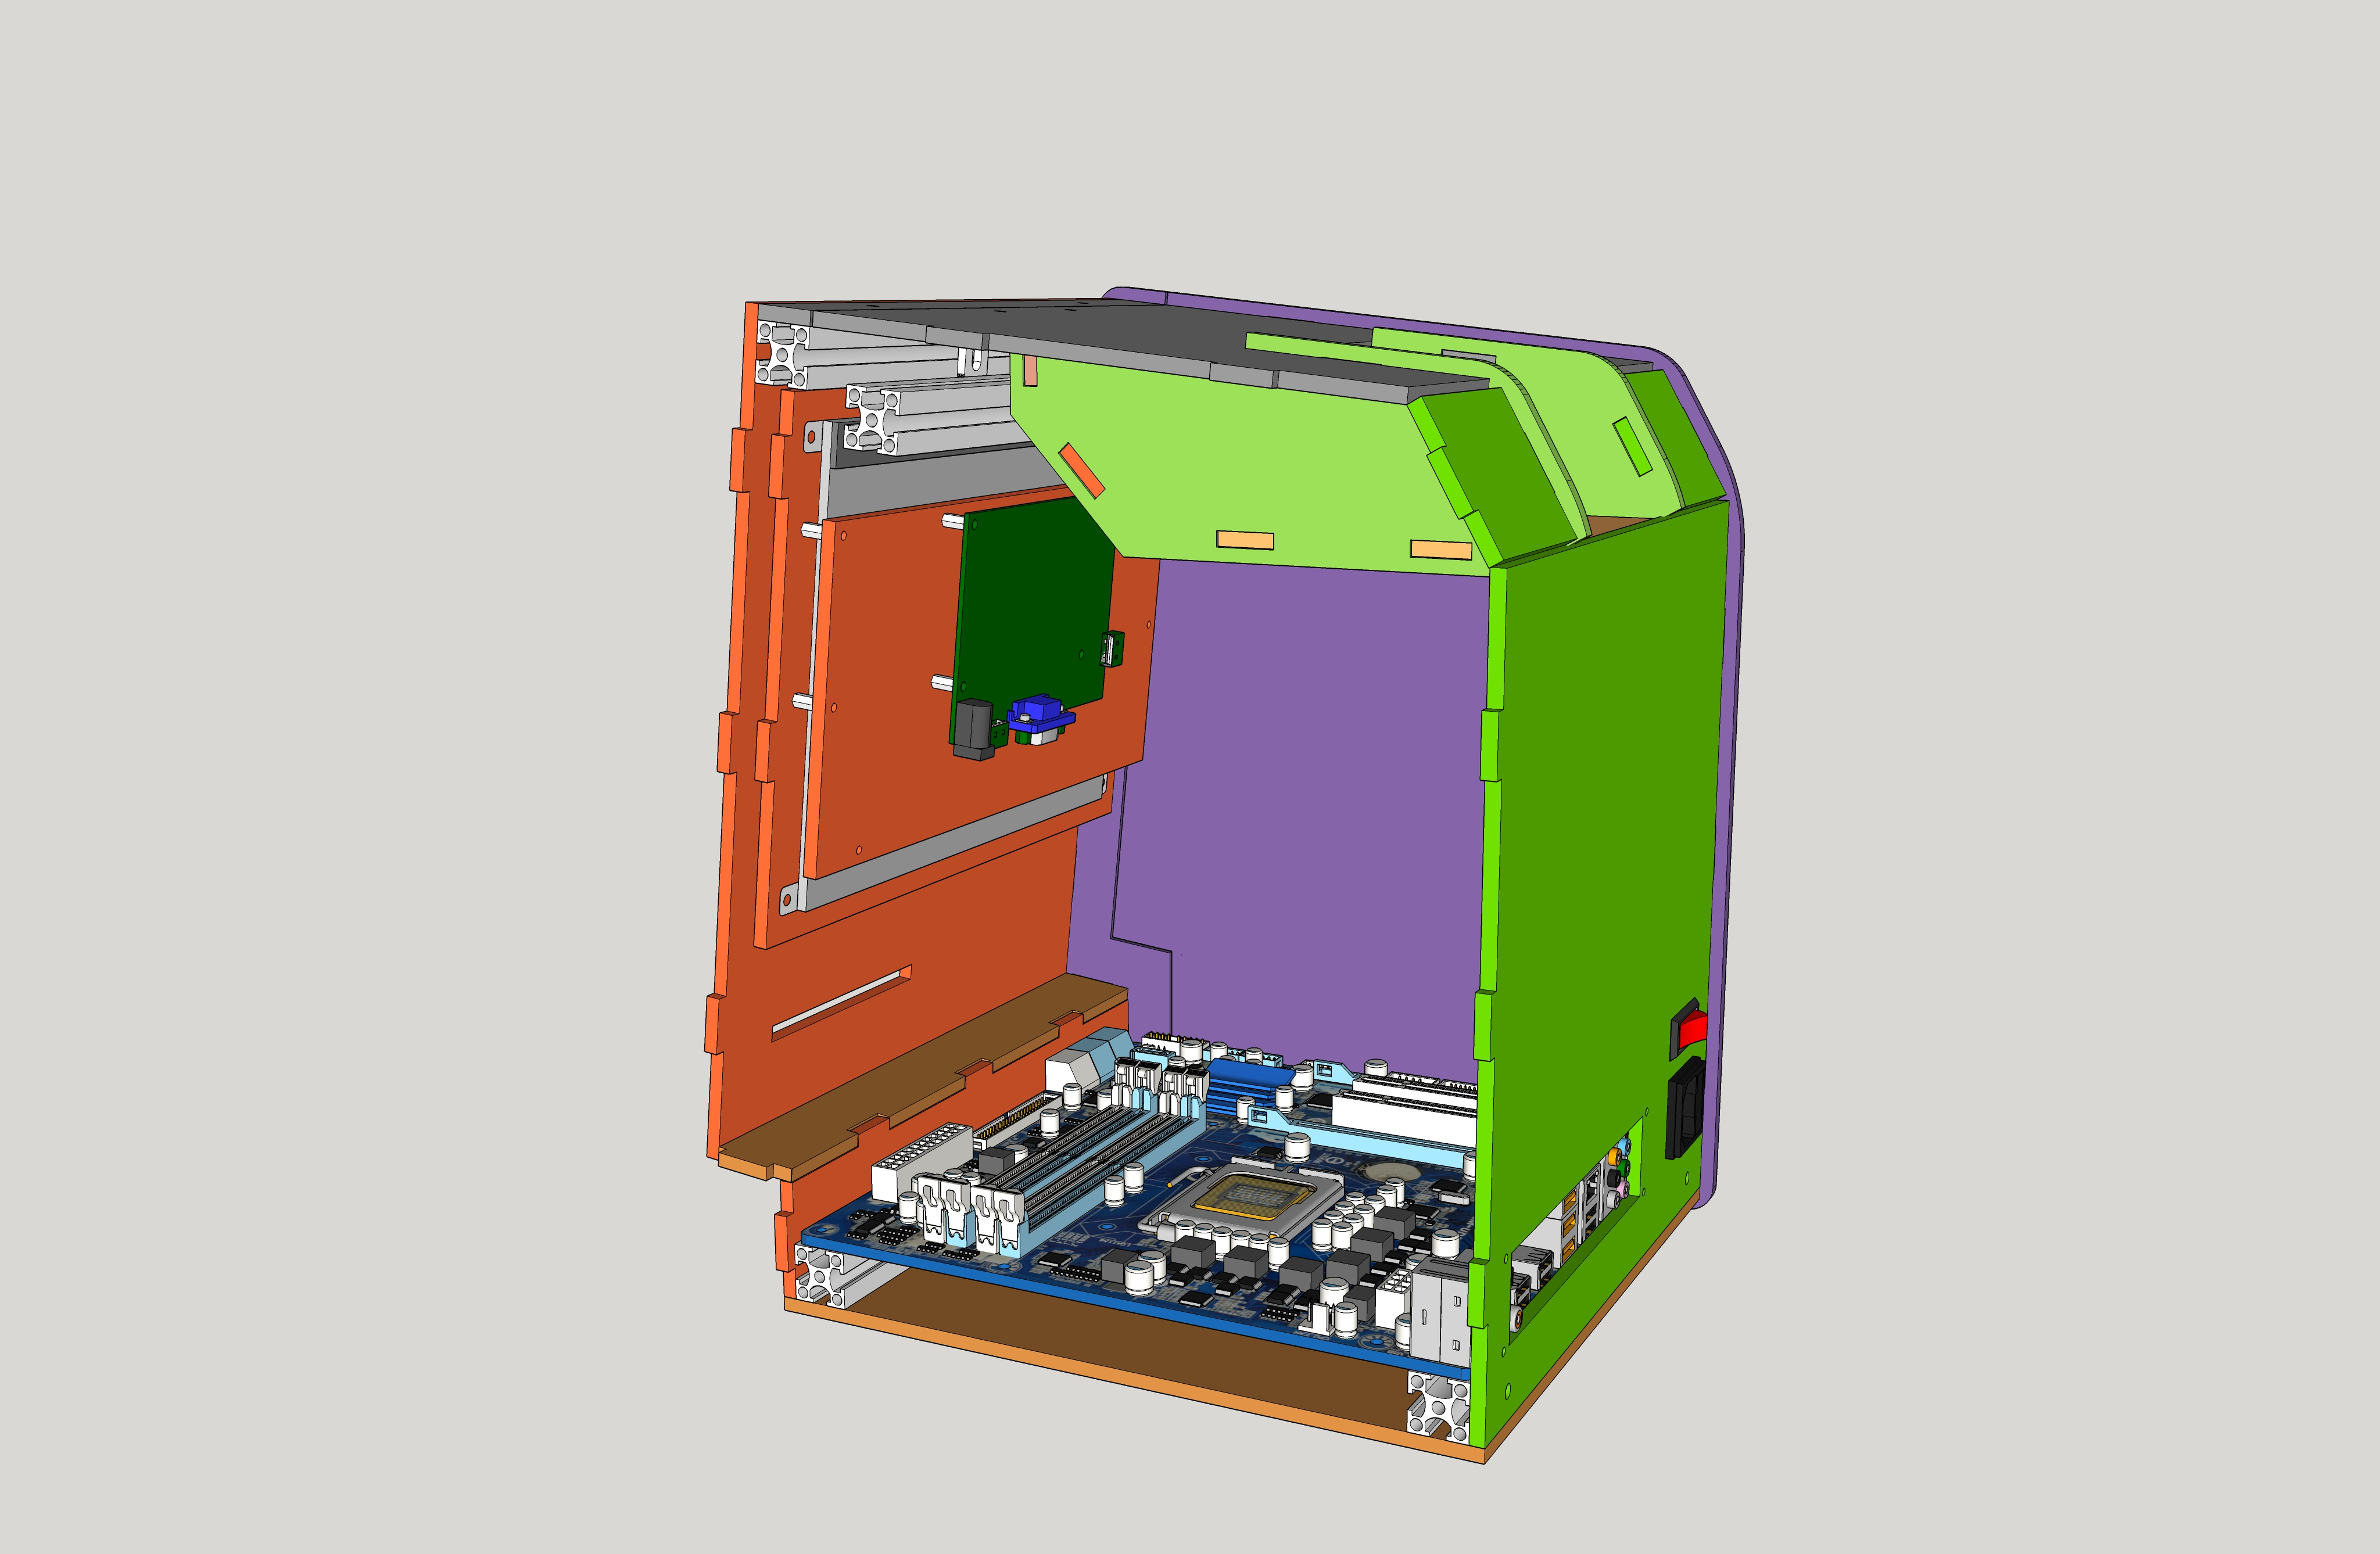 Figure 3 - Design of Apple Classic like case for ODROID